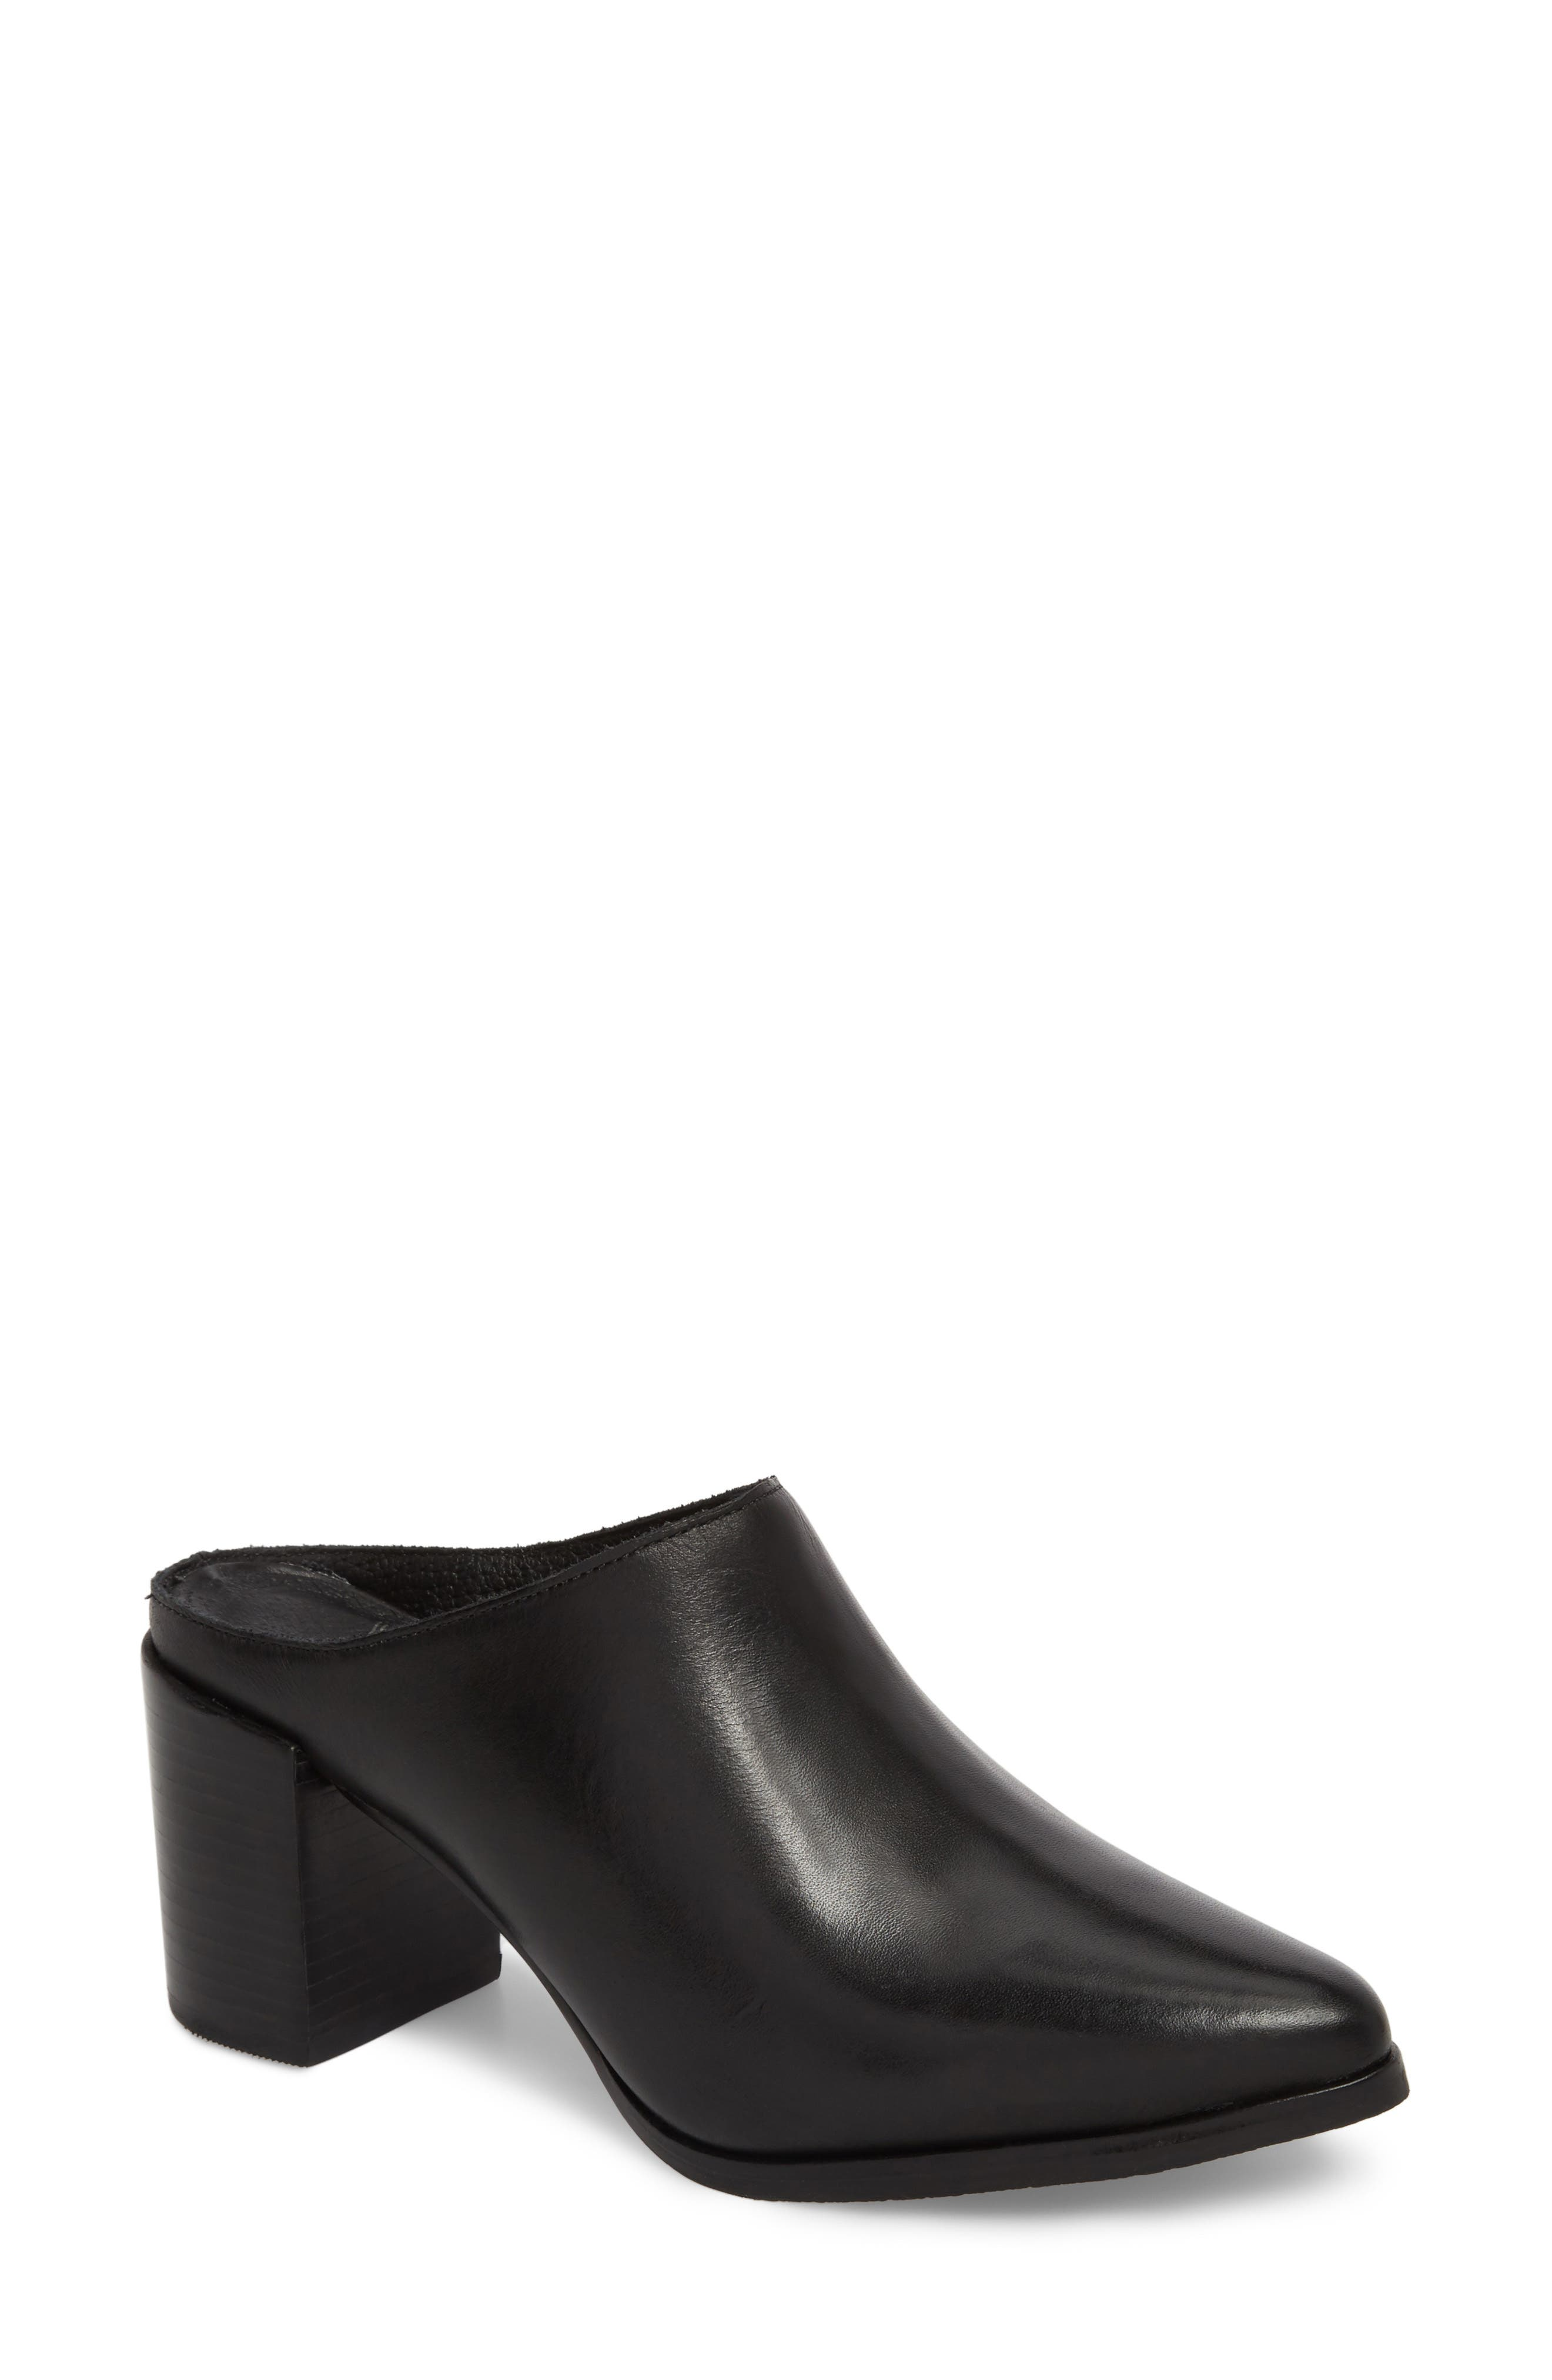 Amuse Society x Matisse Aria Mule,                             Main thumbnail 1, color,                             BLACK LEATHER